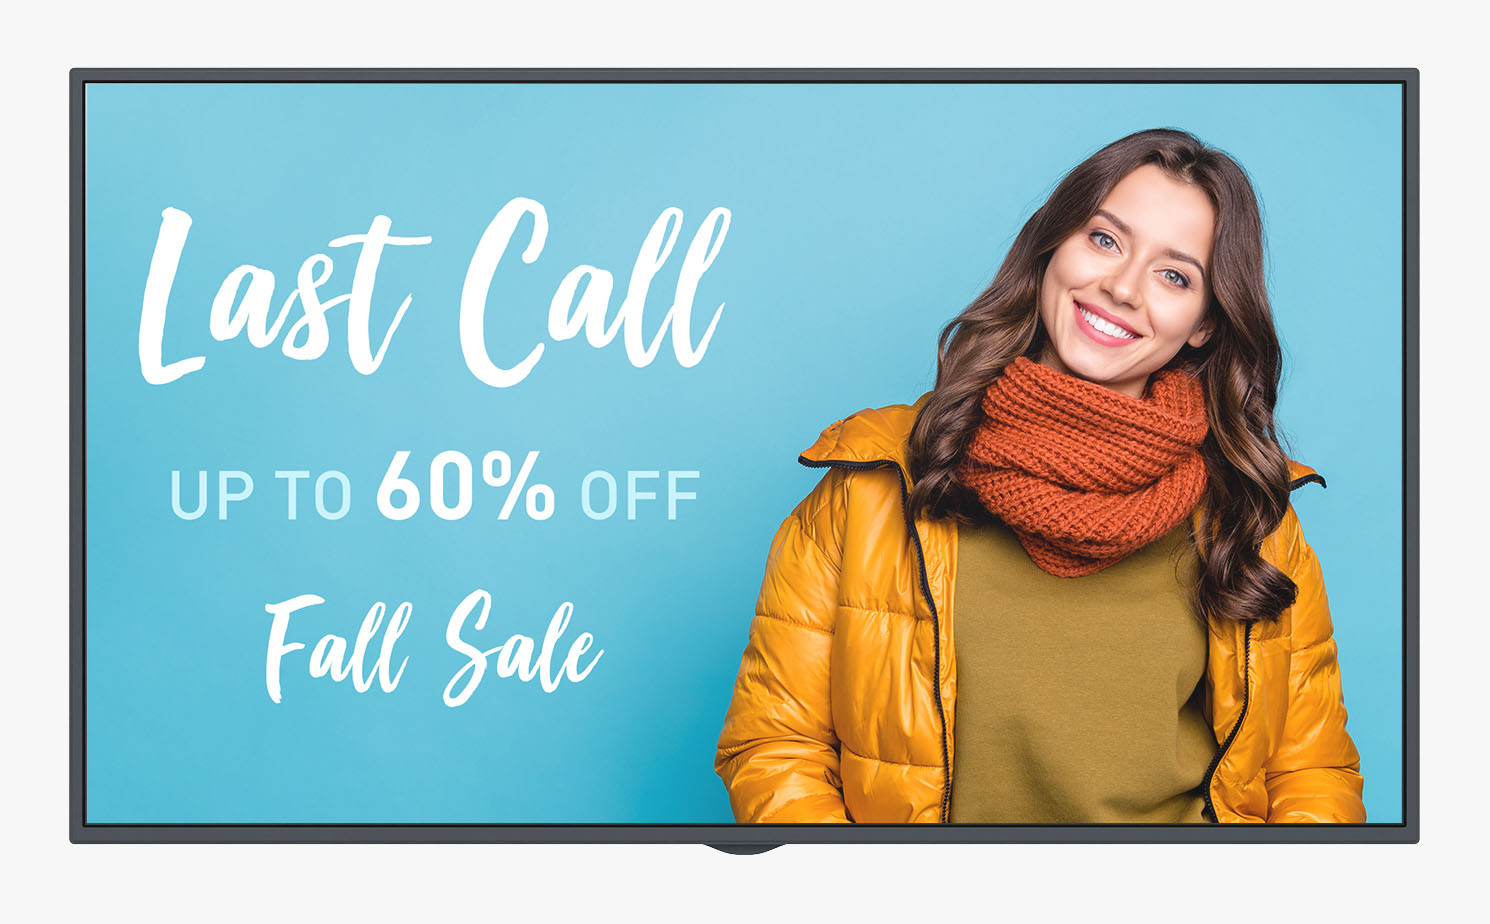 Last Call digital signage ad